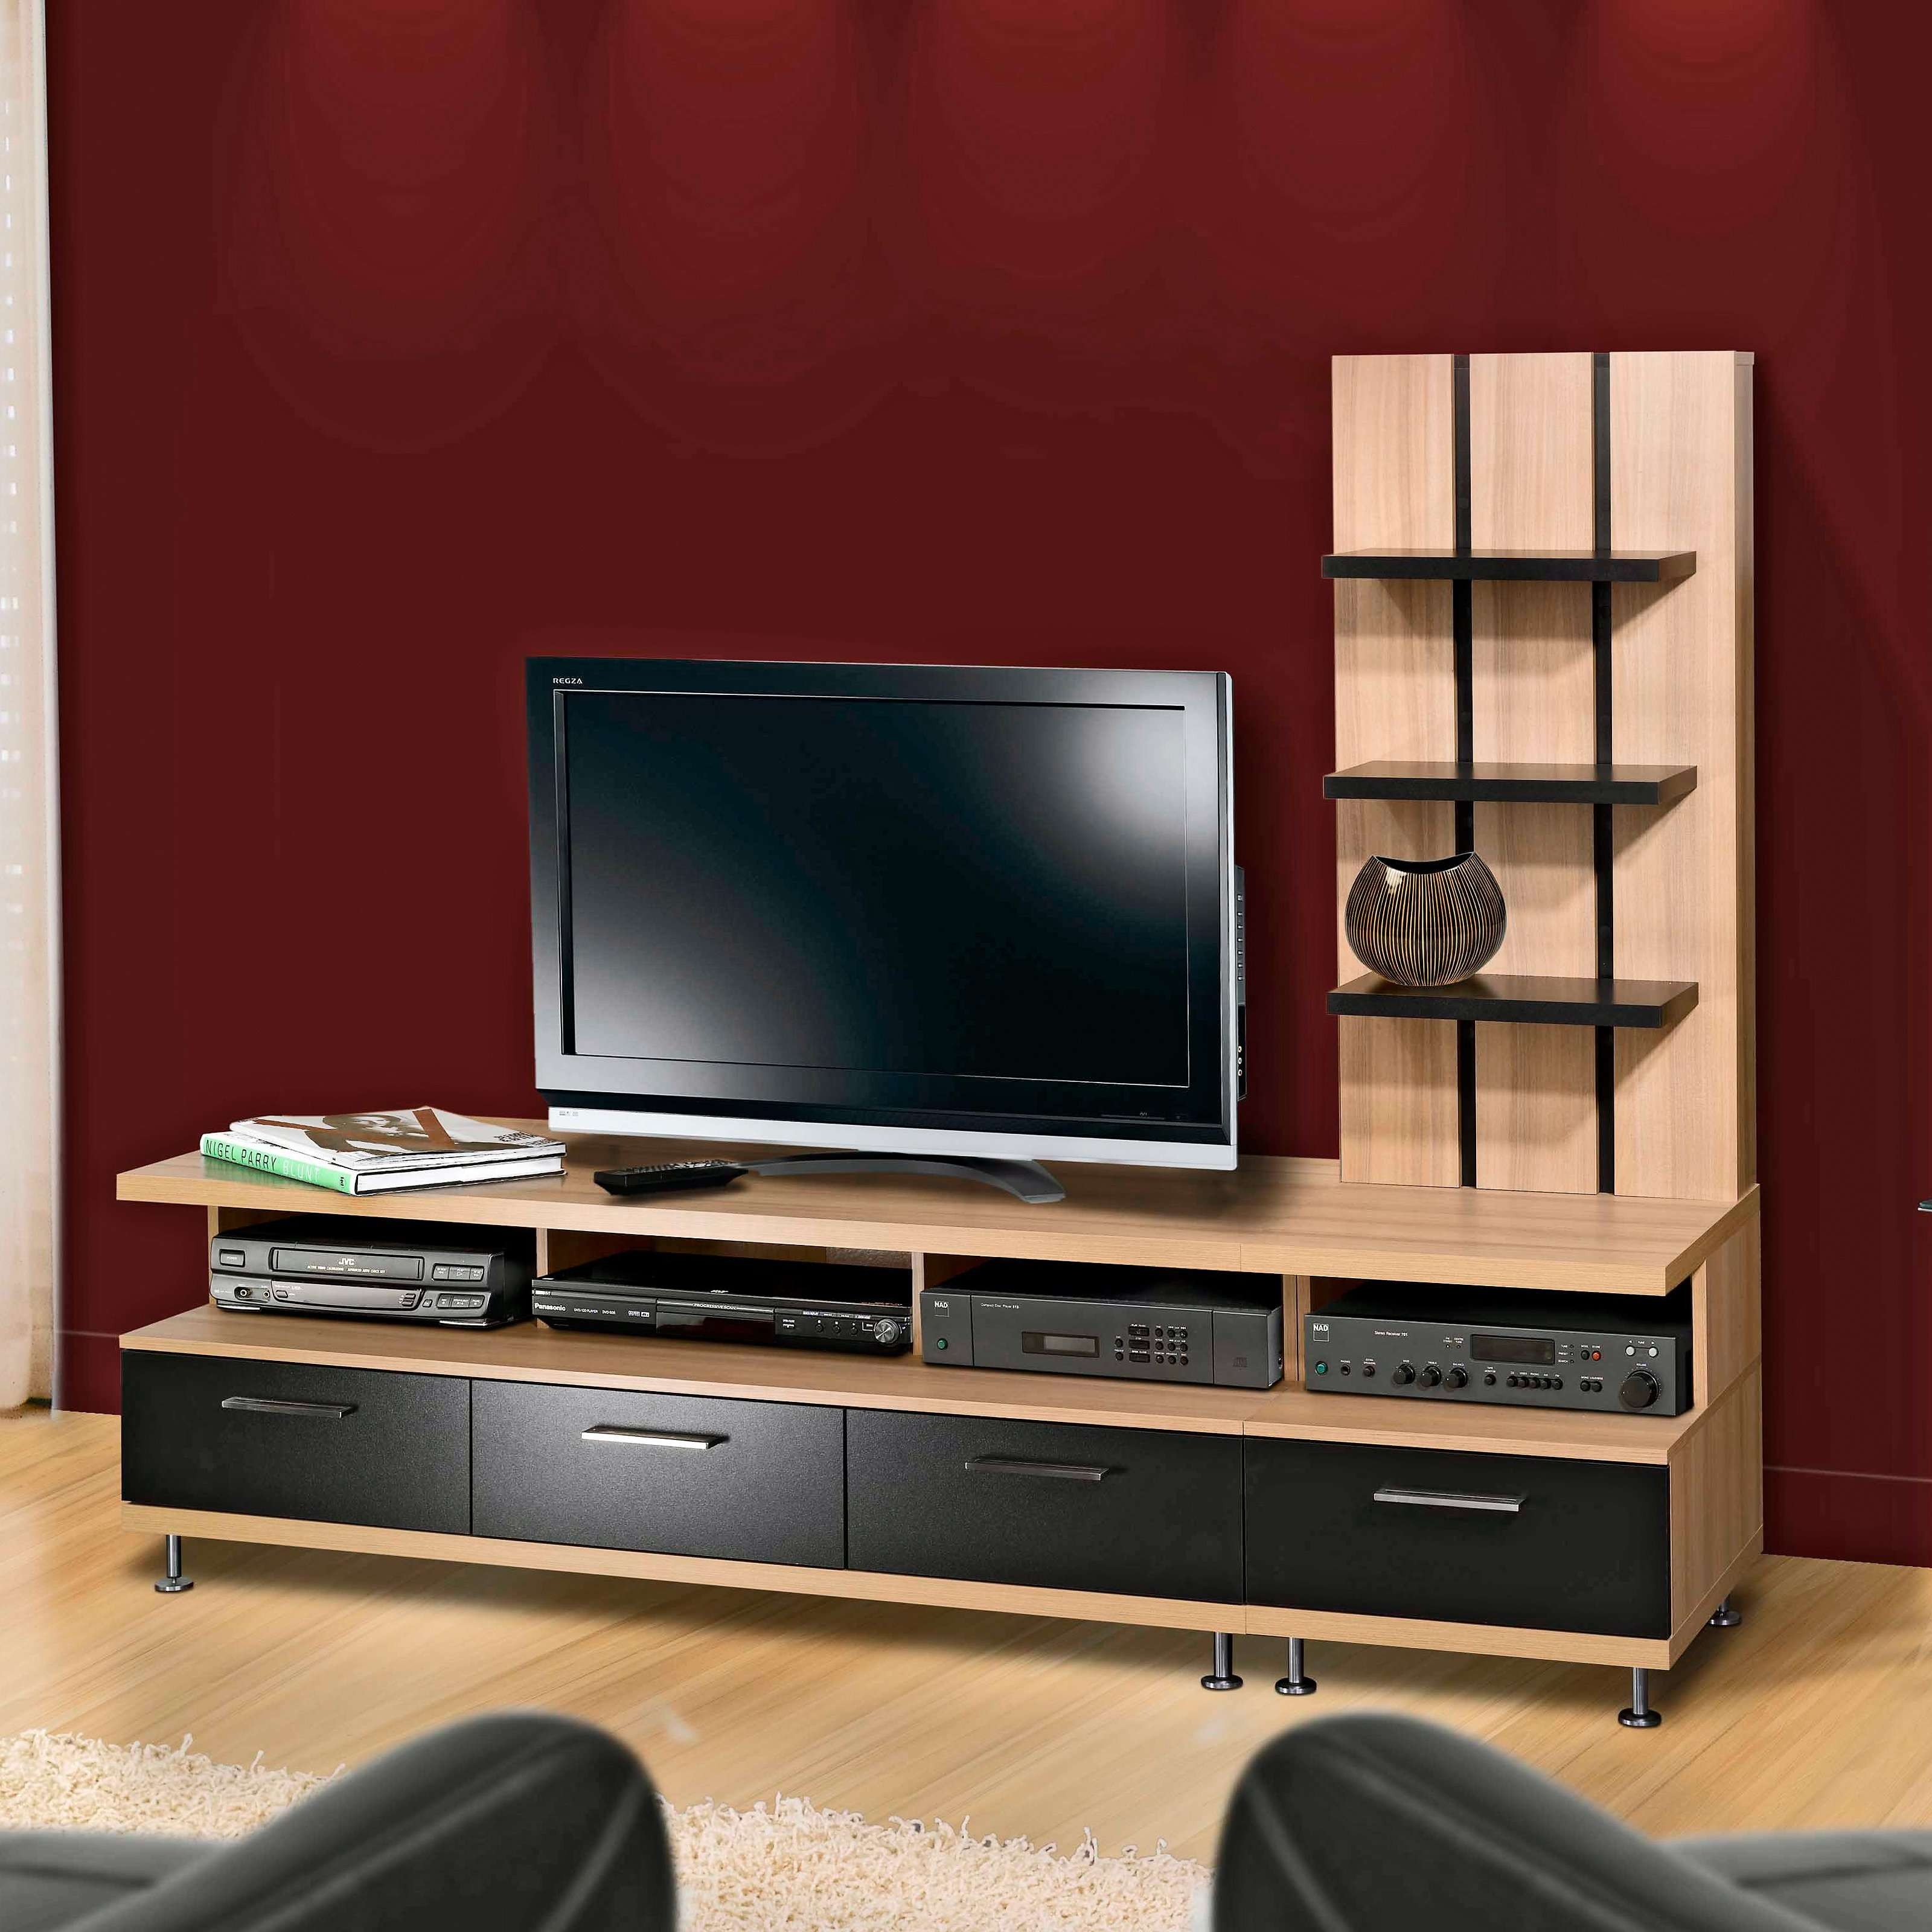 Media Stands For Flat Screen Tvs Tv Wall Units Screens Elegant And With Regard To Contemporary Tv Stands For Flat Screens (View 8 of 15)